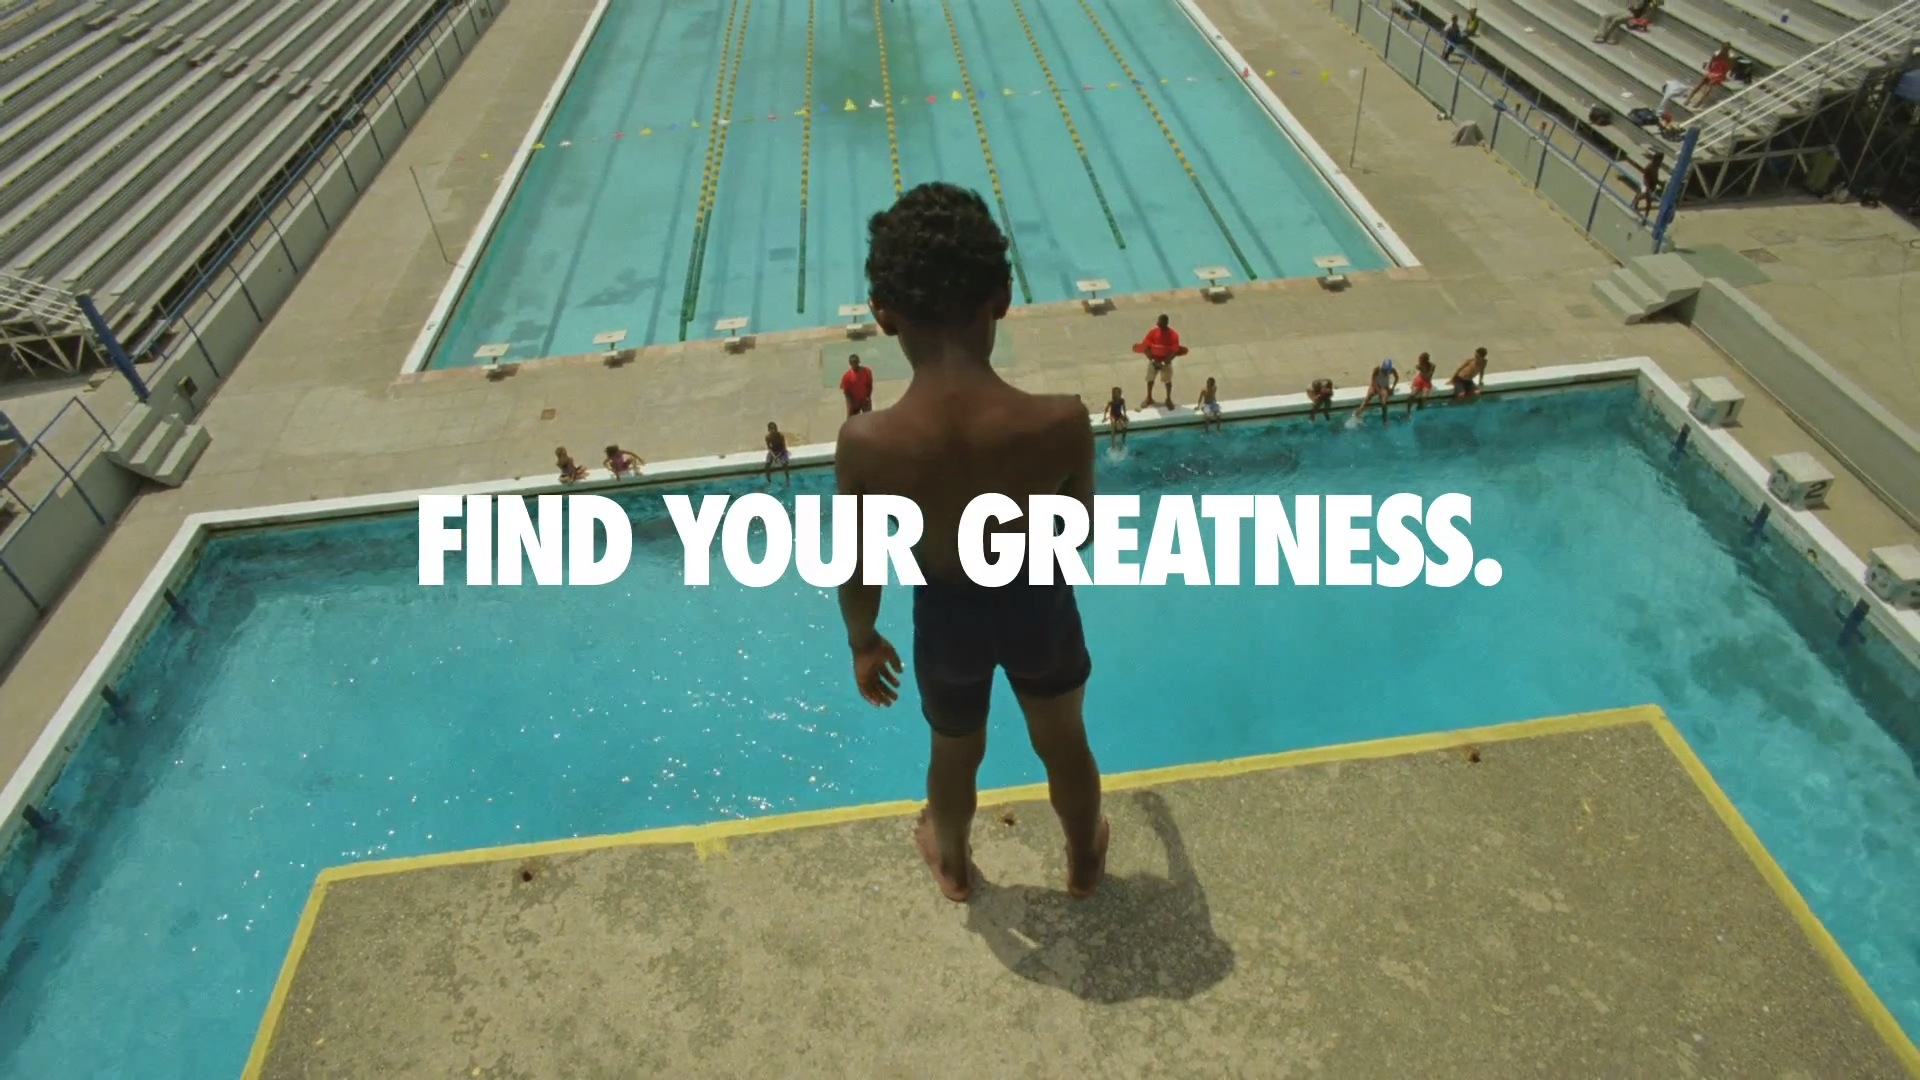 nike-find-your-greatness6.jpg